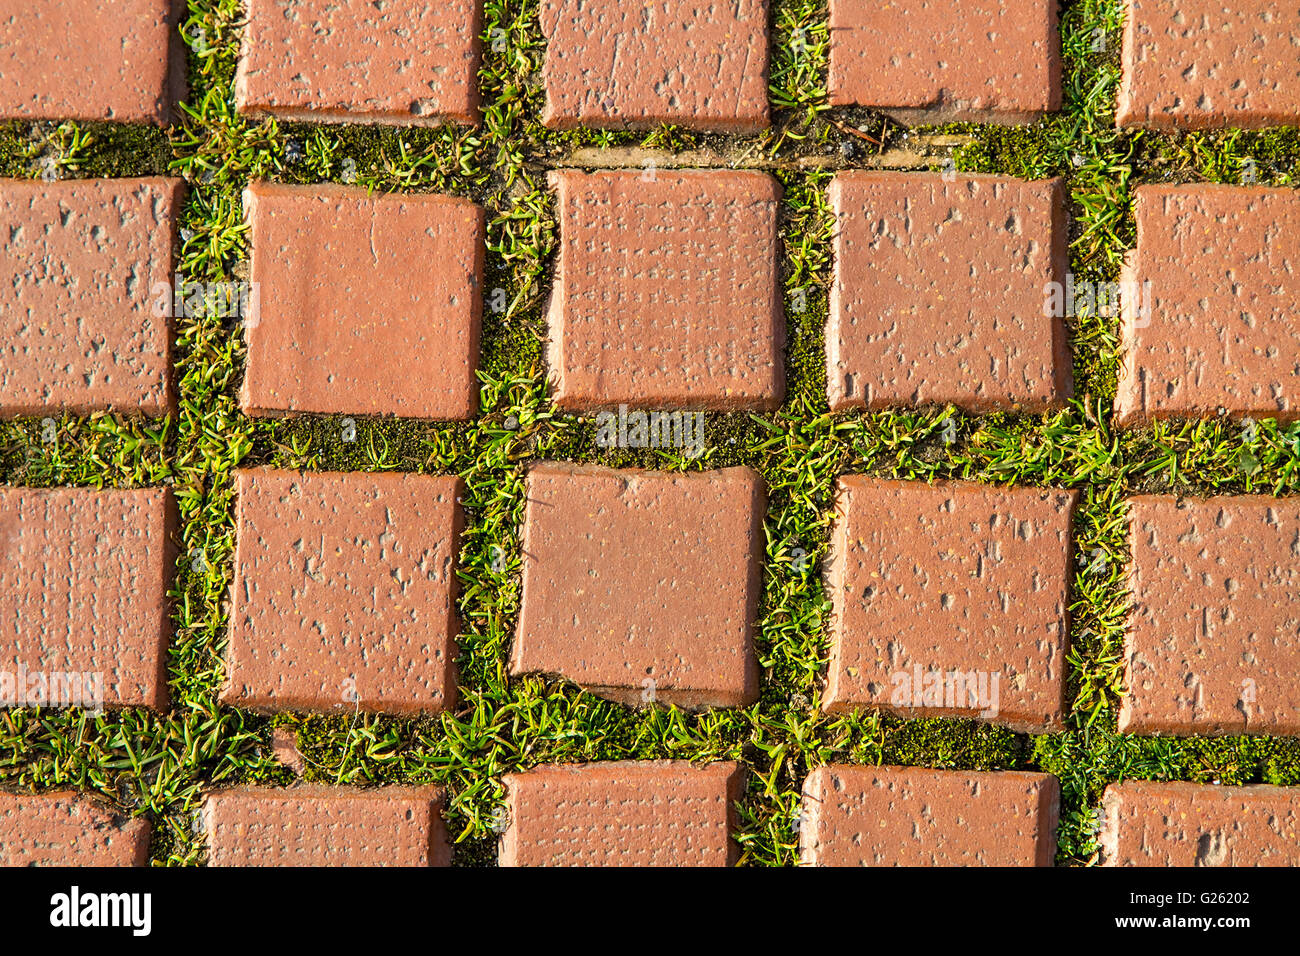 Grass Brick Stone Path Texture Green Pavement Sidewalk